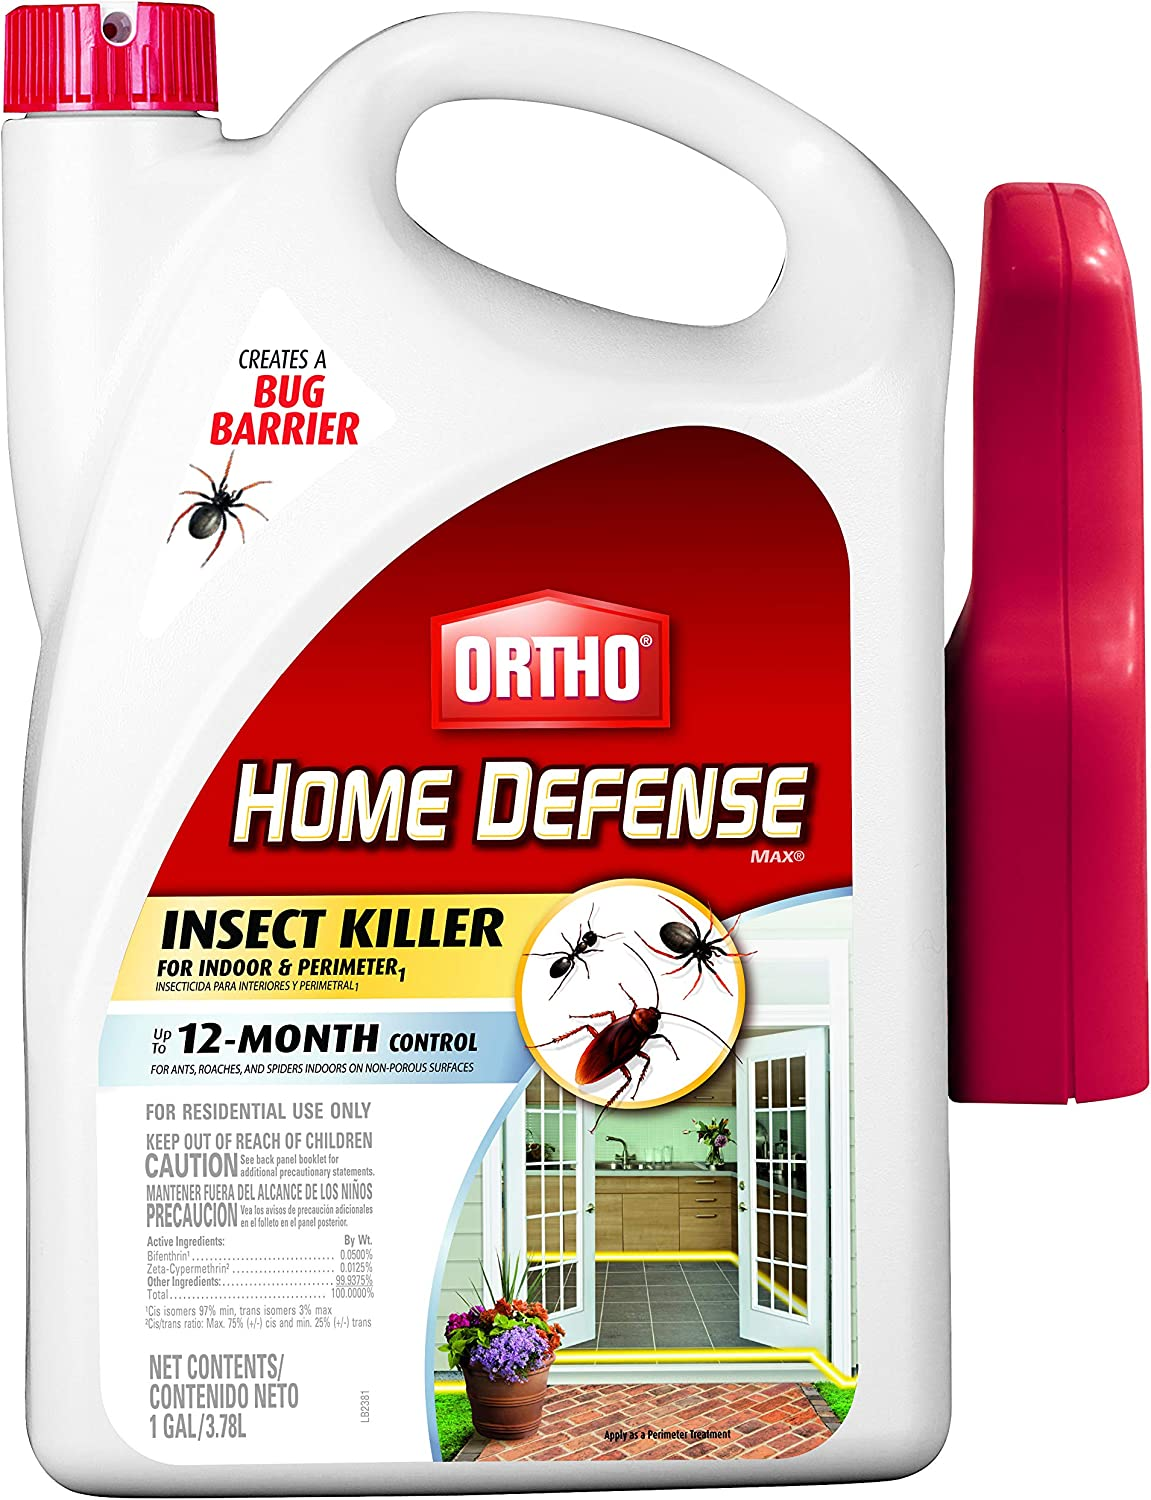 Ortho 0196710 Home Defense MAX Insect Killer Spray for Indoor and Home Perimeter, 1-Gallon (Ant, Roach, Spider, Stinkbug, Centipede Killer)